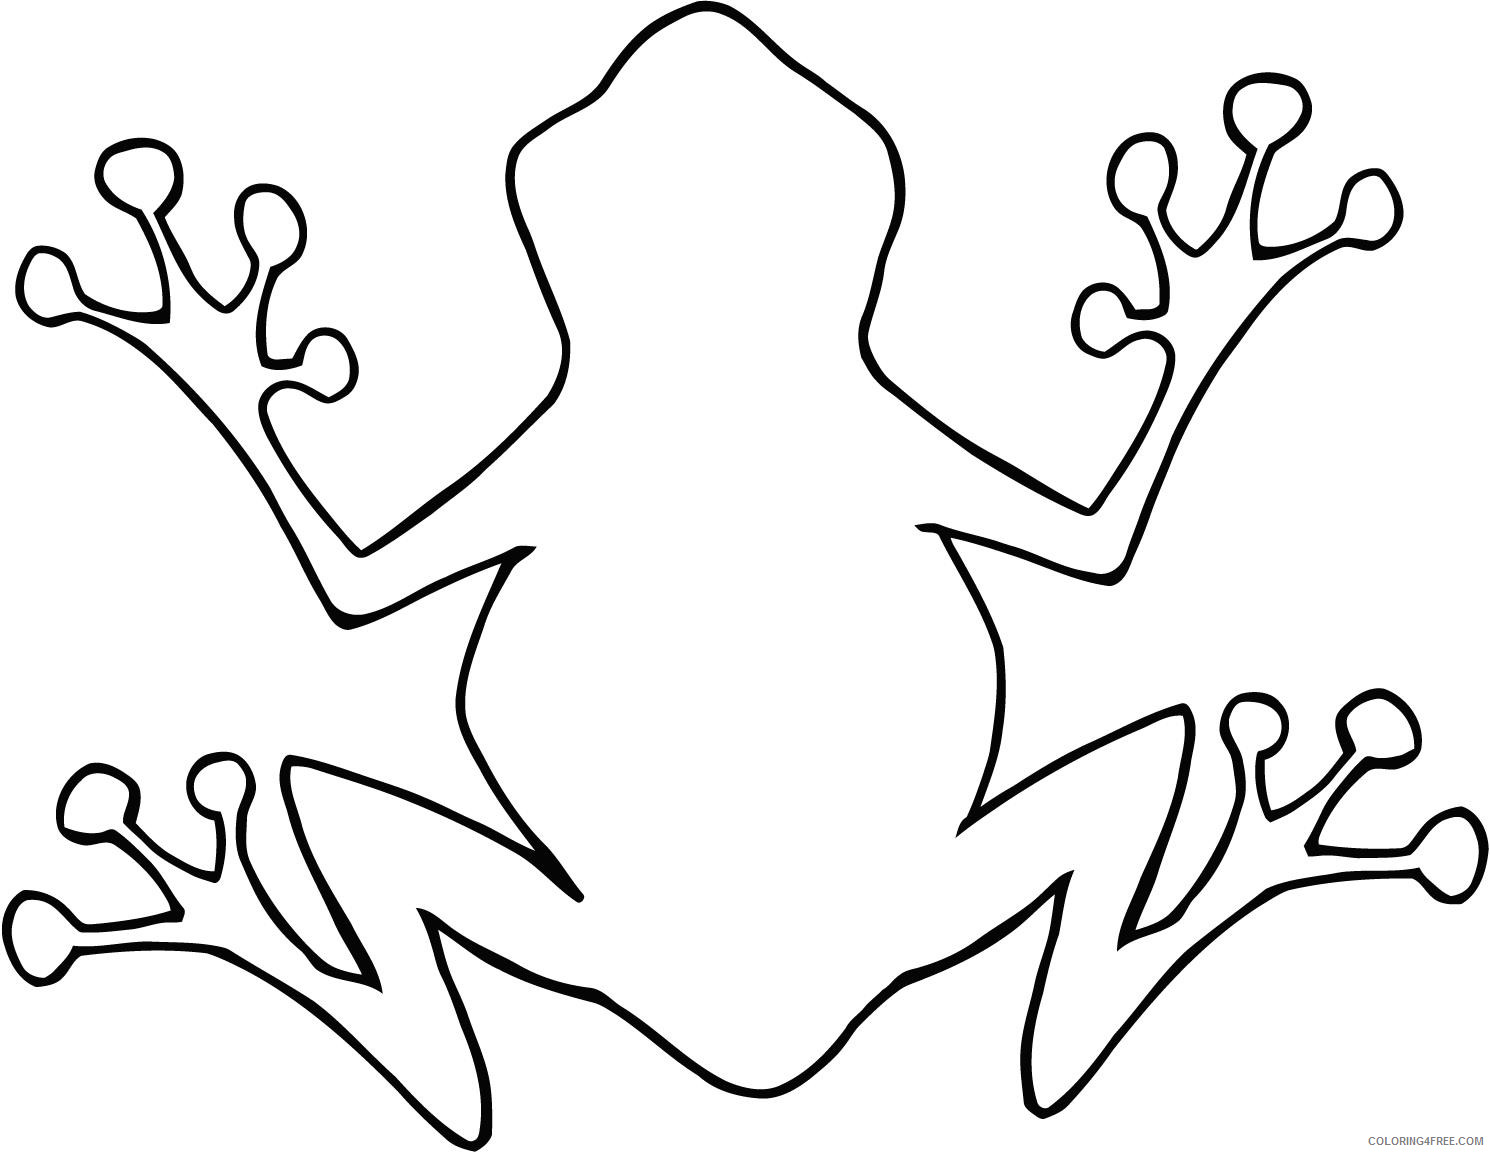 Coloring Pages Frog Coloring Pages sheet of cartoon outline Printable Coloring4free